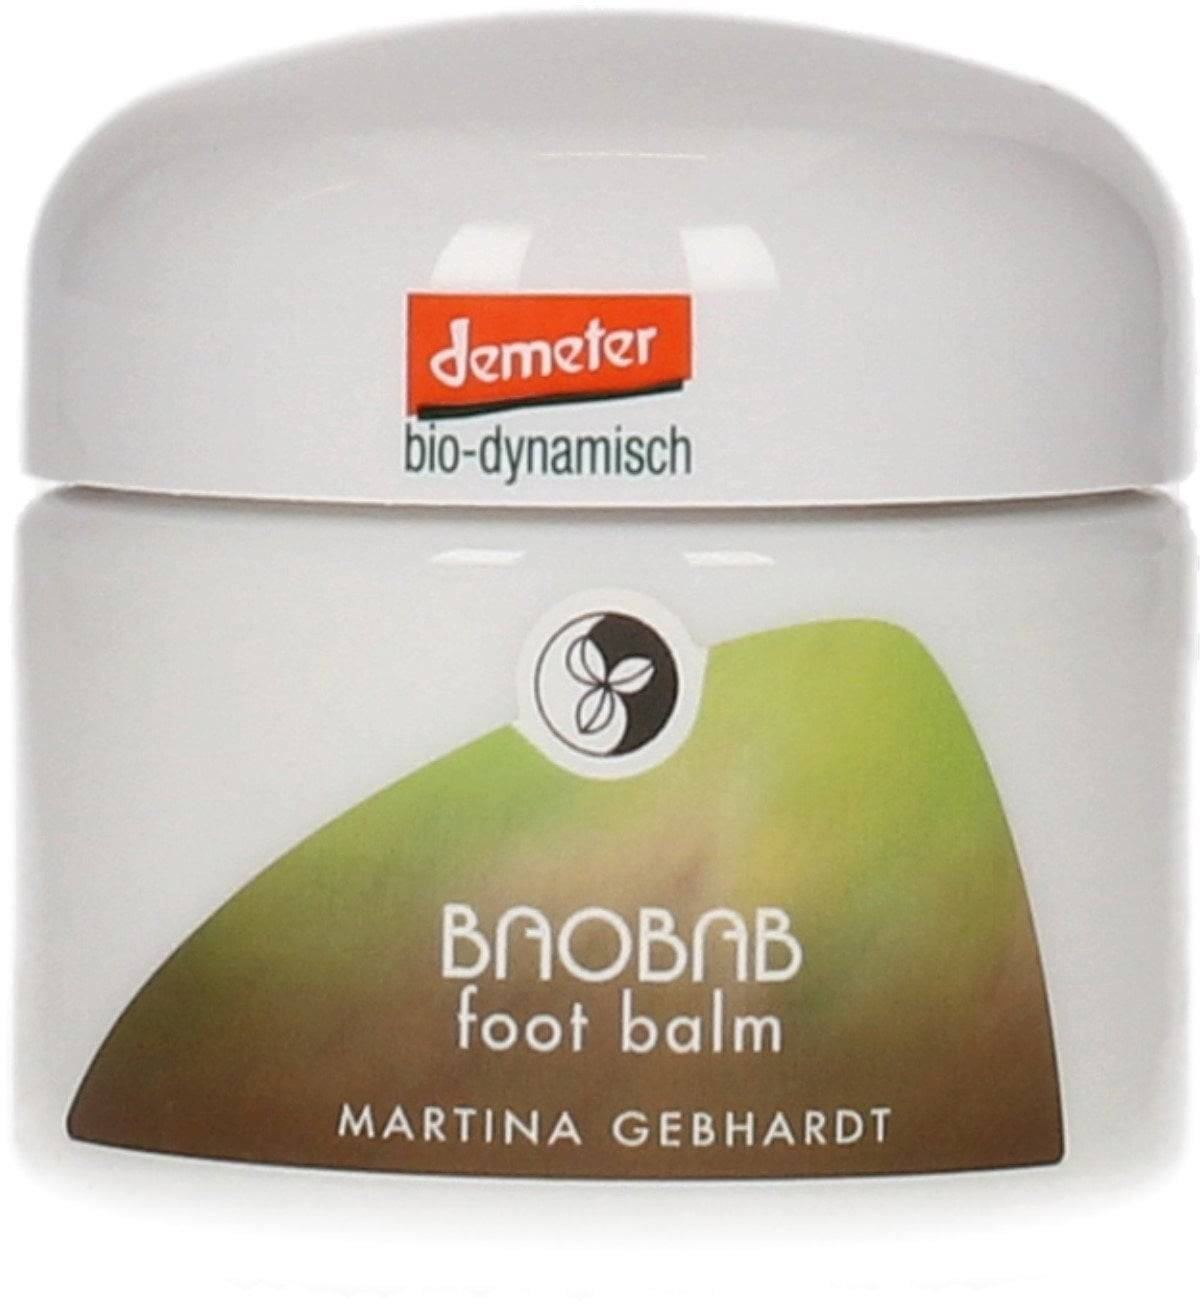 Martina Gebhardt Baobab Foot Balm - 50 ml